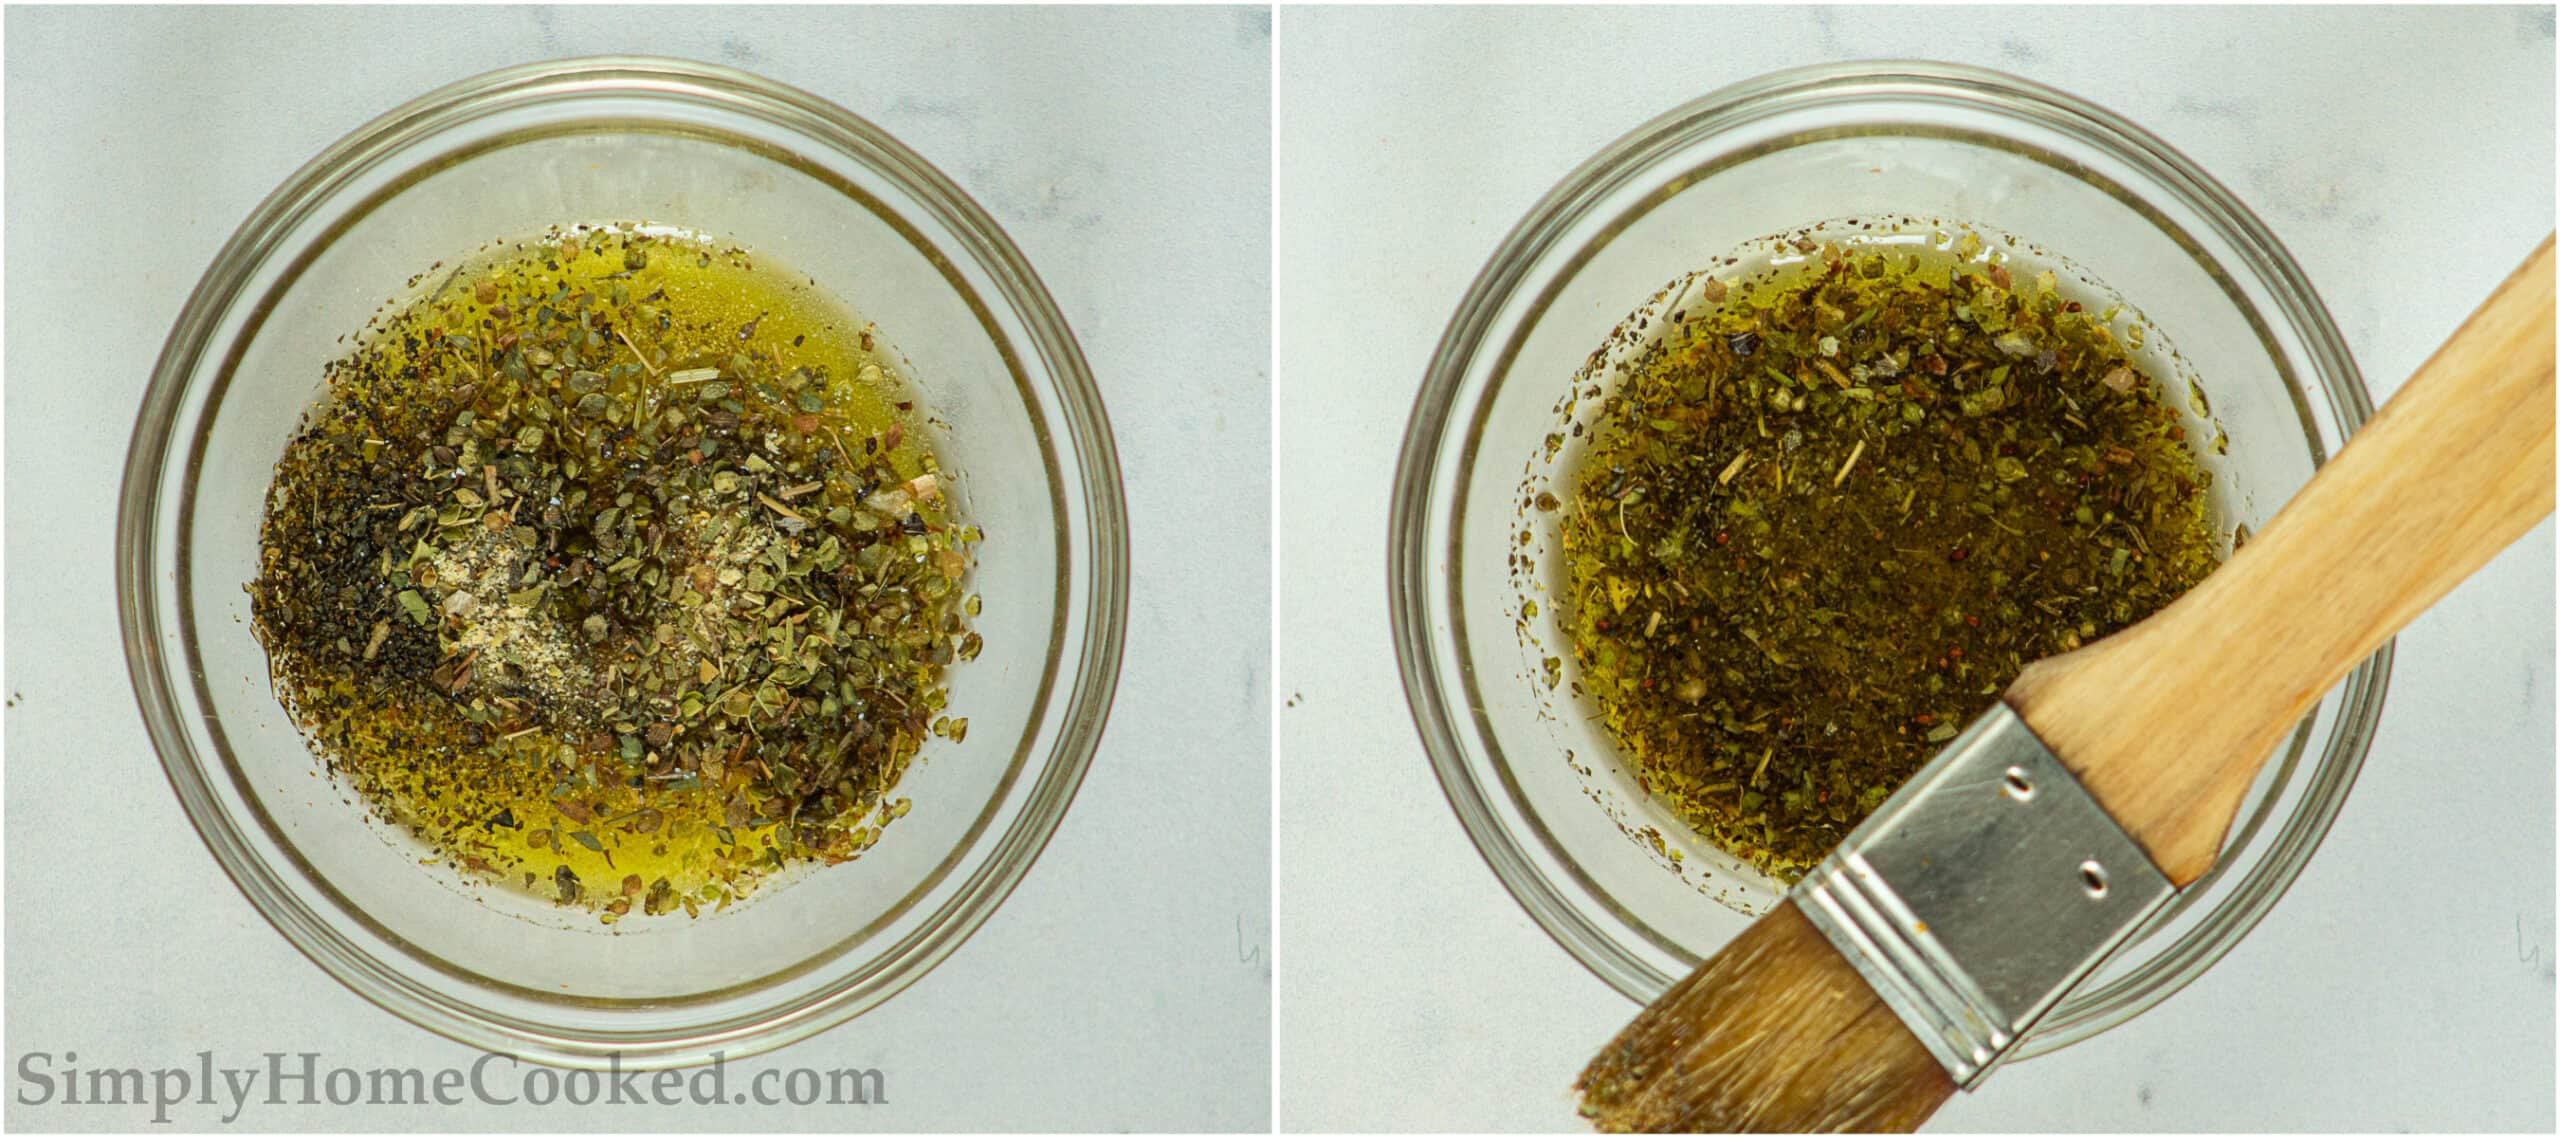 close up image of butter and herb mixture for pizza hut breadsticks